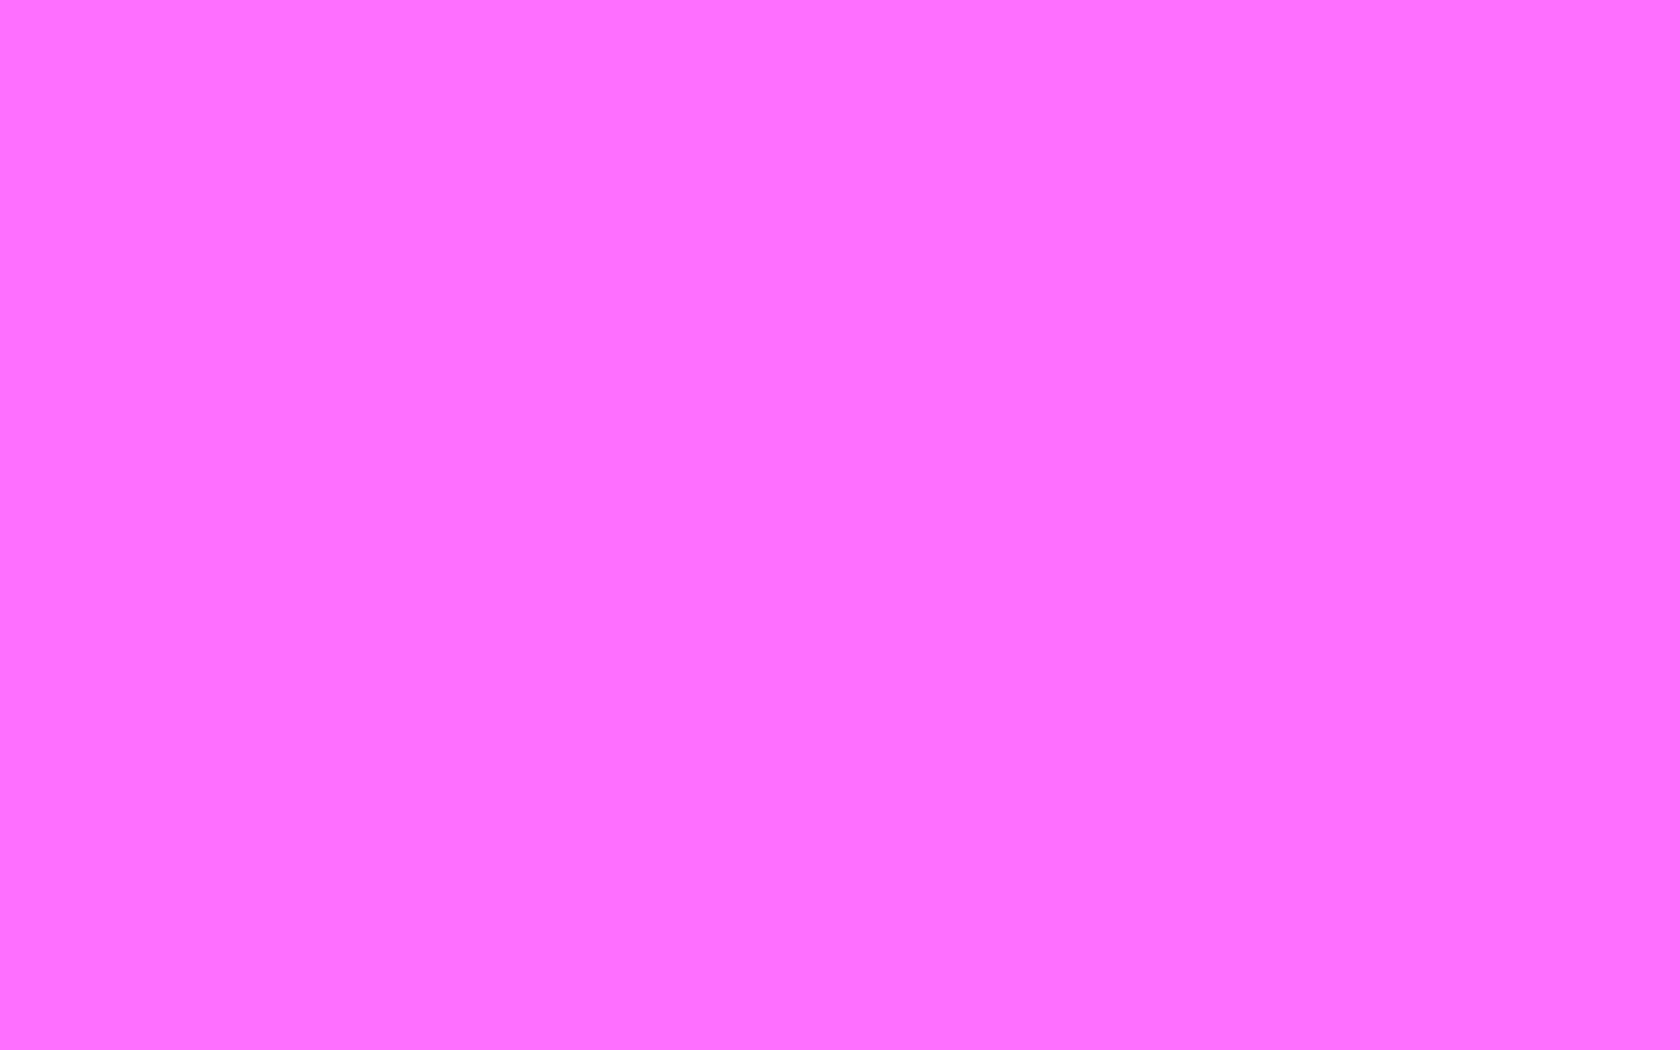 1680x1050 Shocking Pink Crayola Solid Color Background